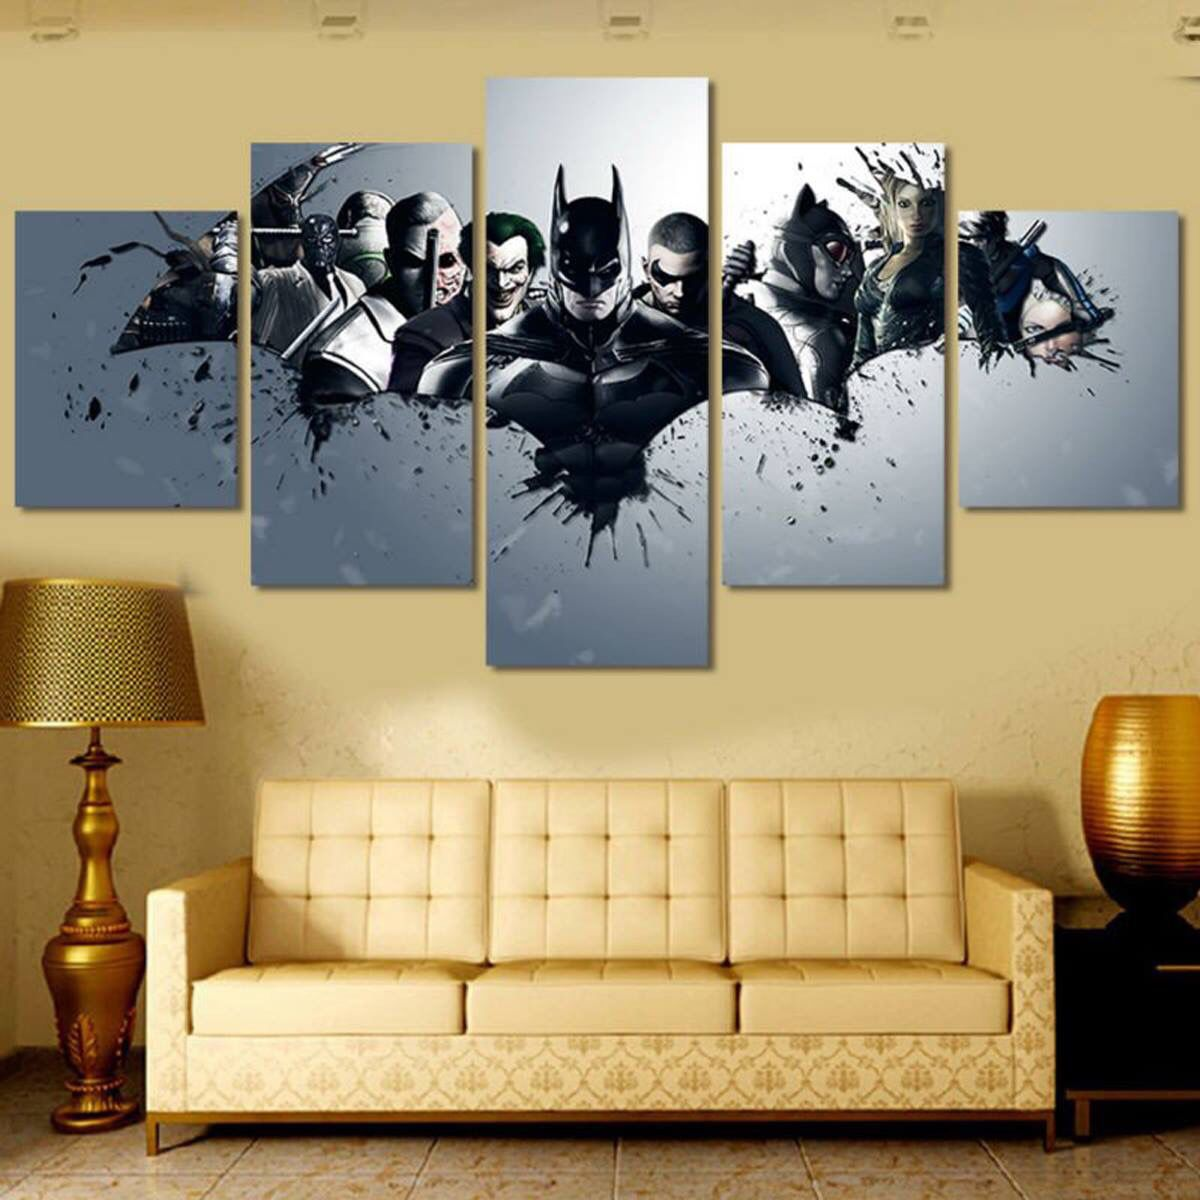 For the love of superheroes | Split canvas | Pinterest | Superheroes ...